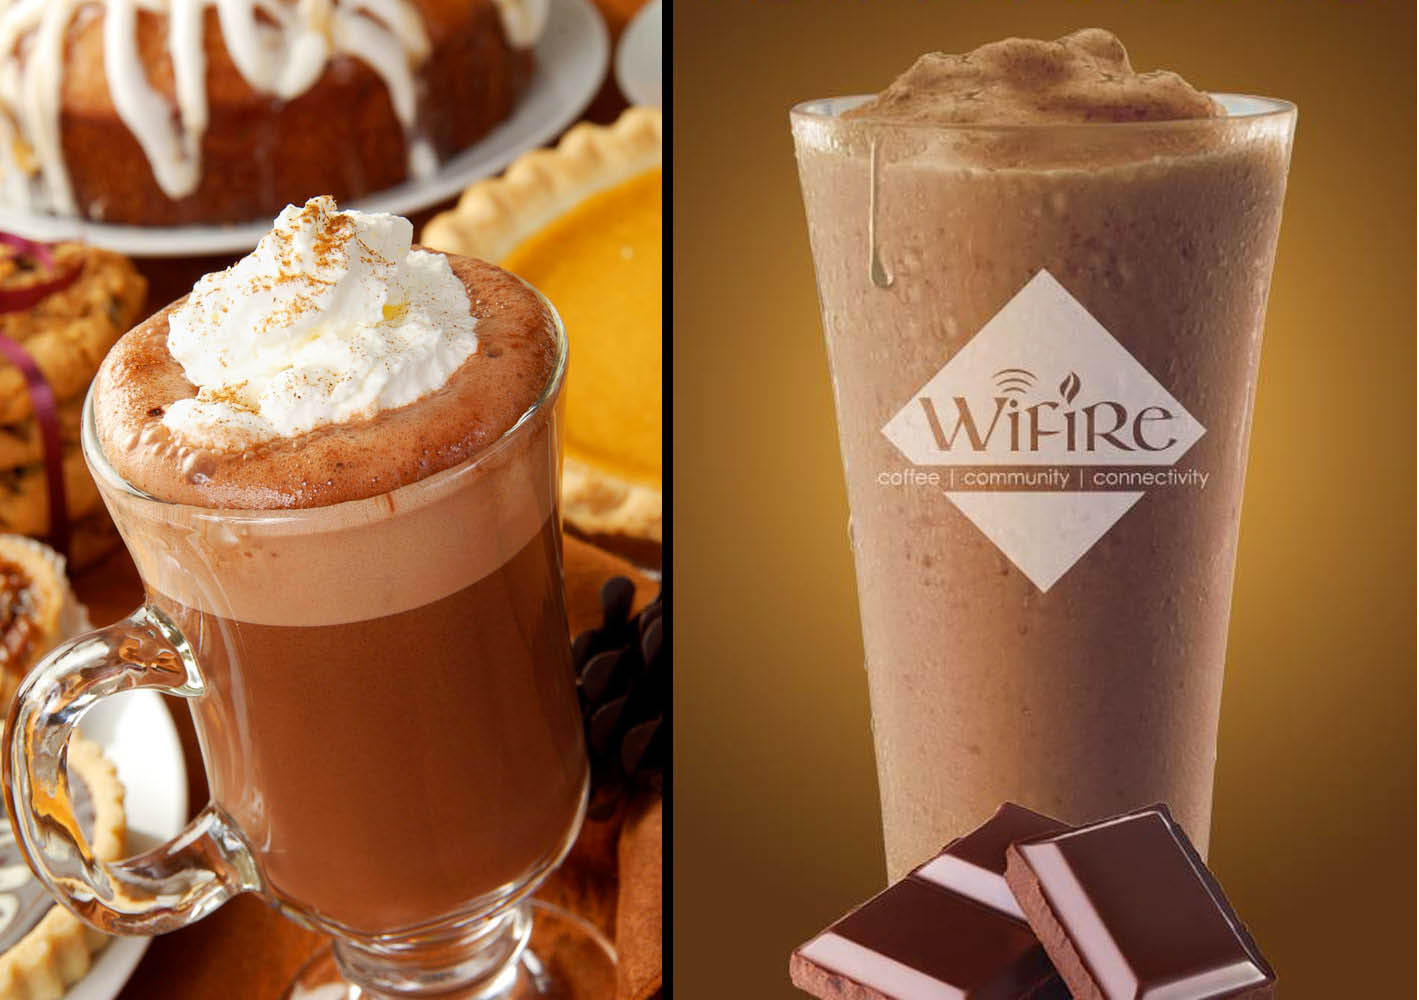 WiFire pumpkin spice latte and chocolate, protein frappe